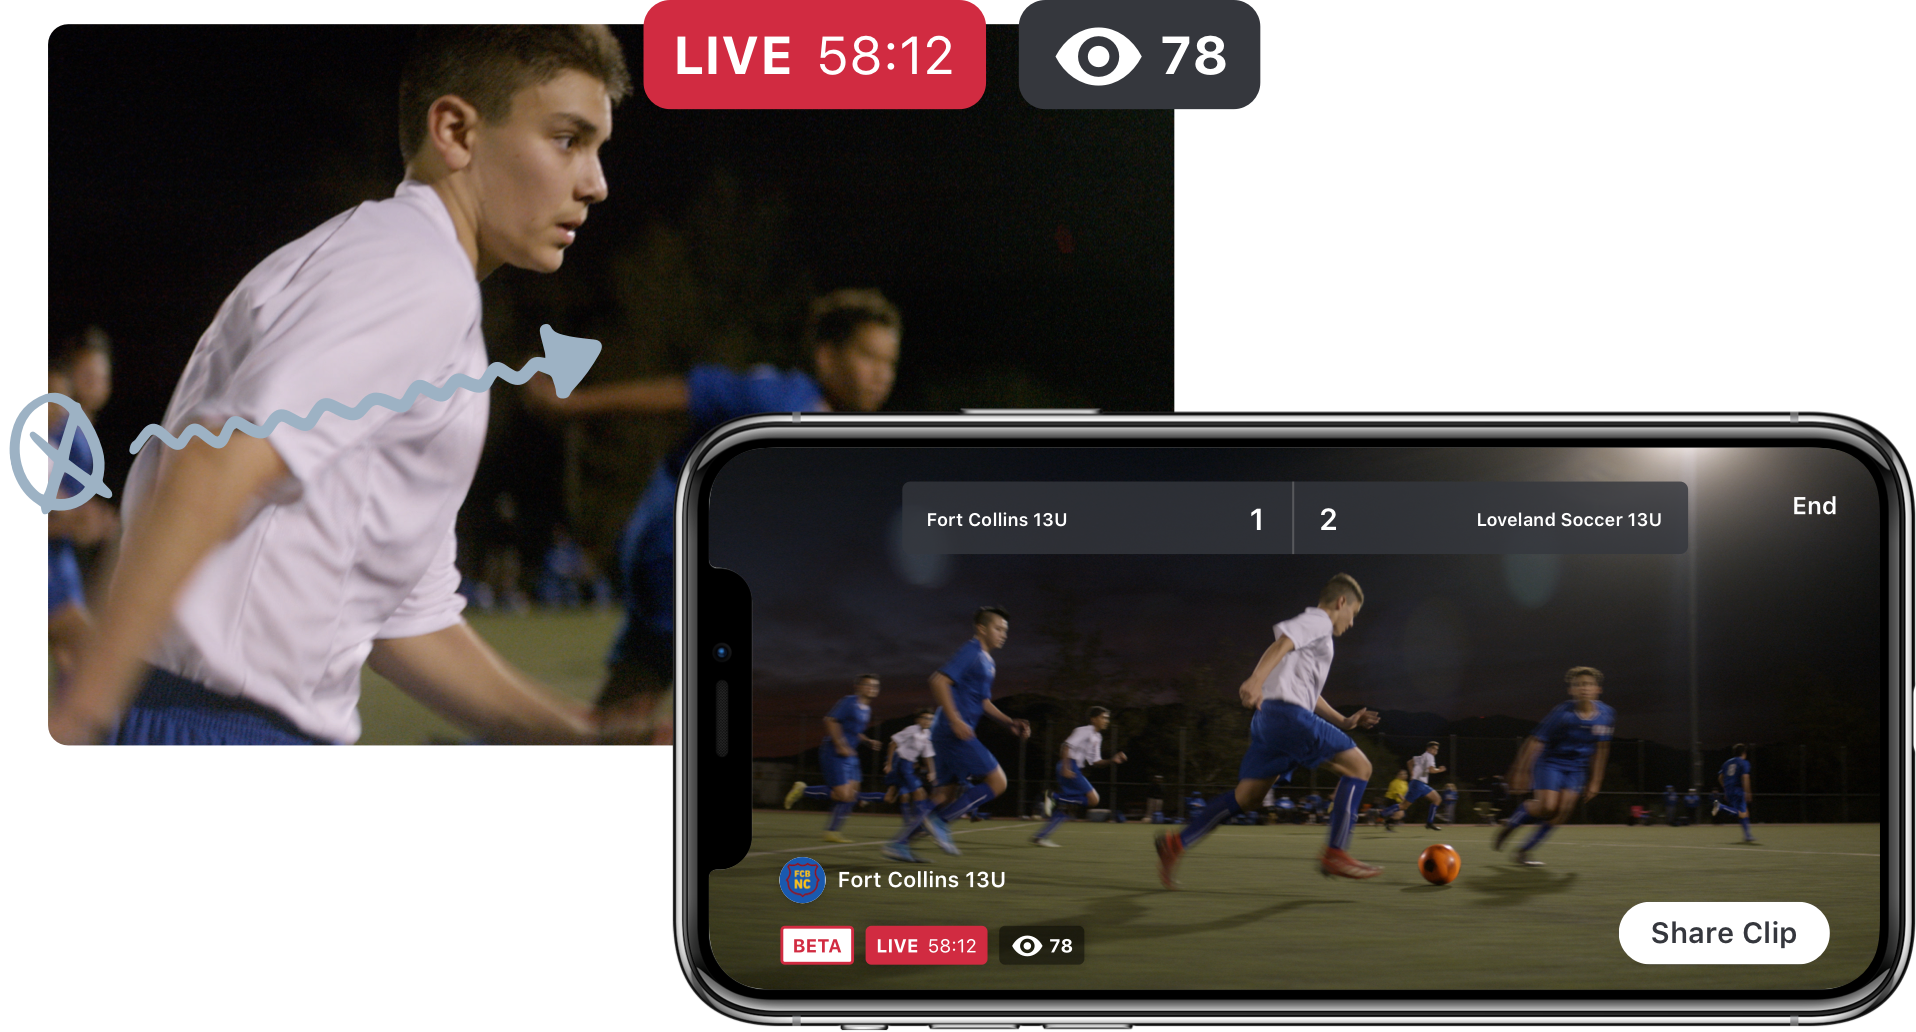 Live video streaming for soccer